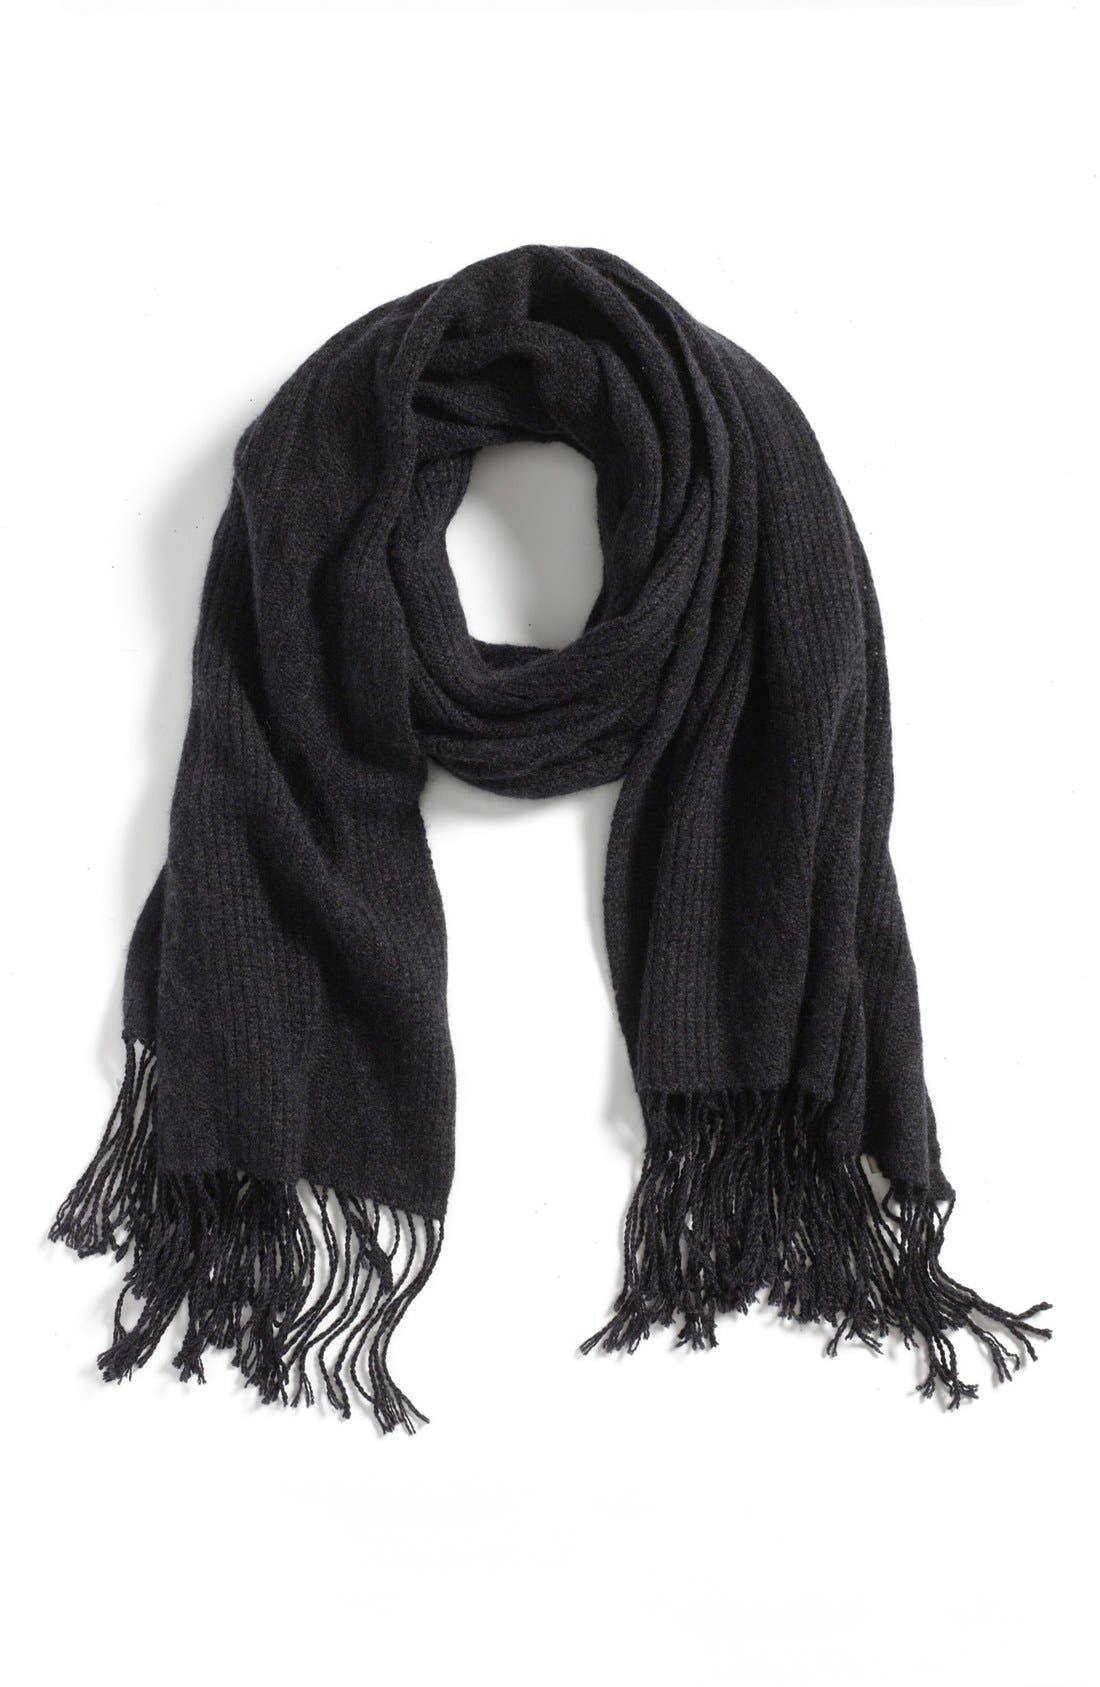 NORDSTROM,                             'Luxe' Cable Knit Cashmere Scarf,                             Main thumbnail 1, color,                             001